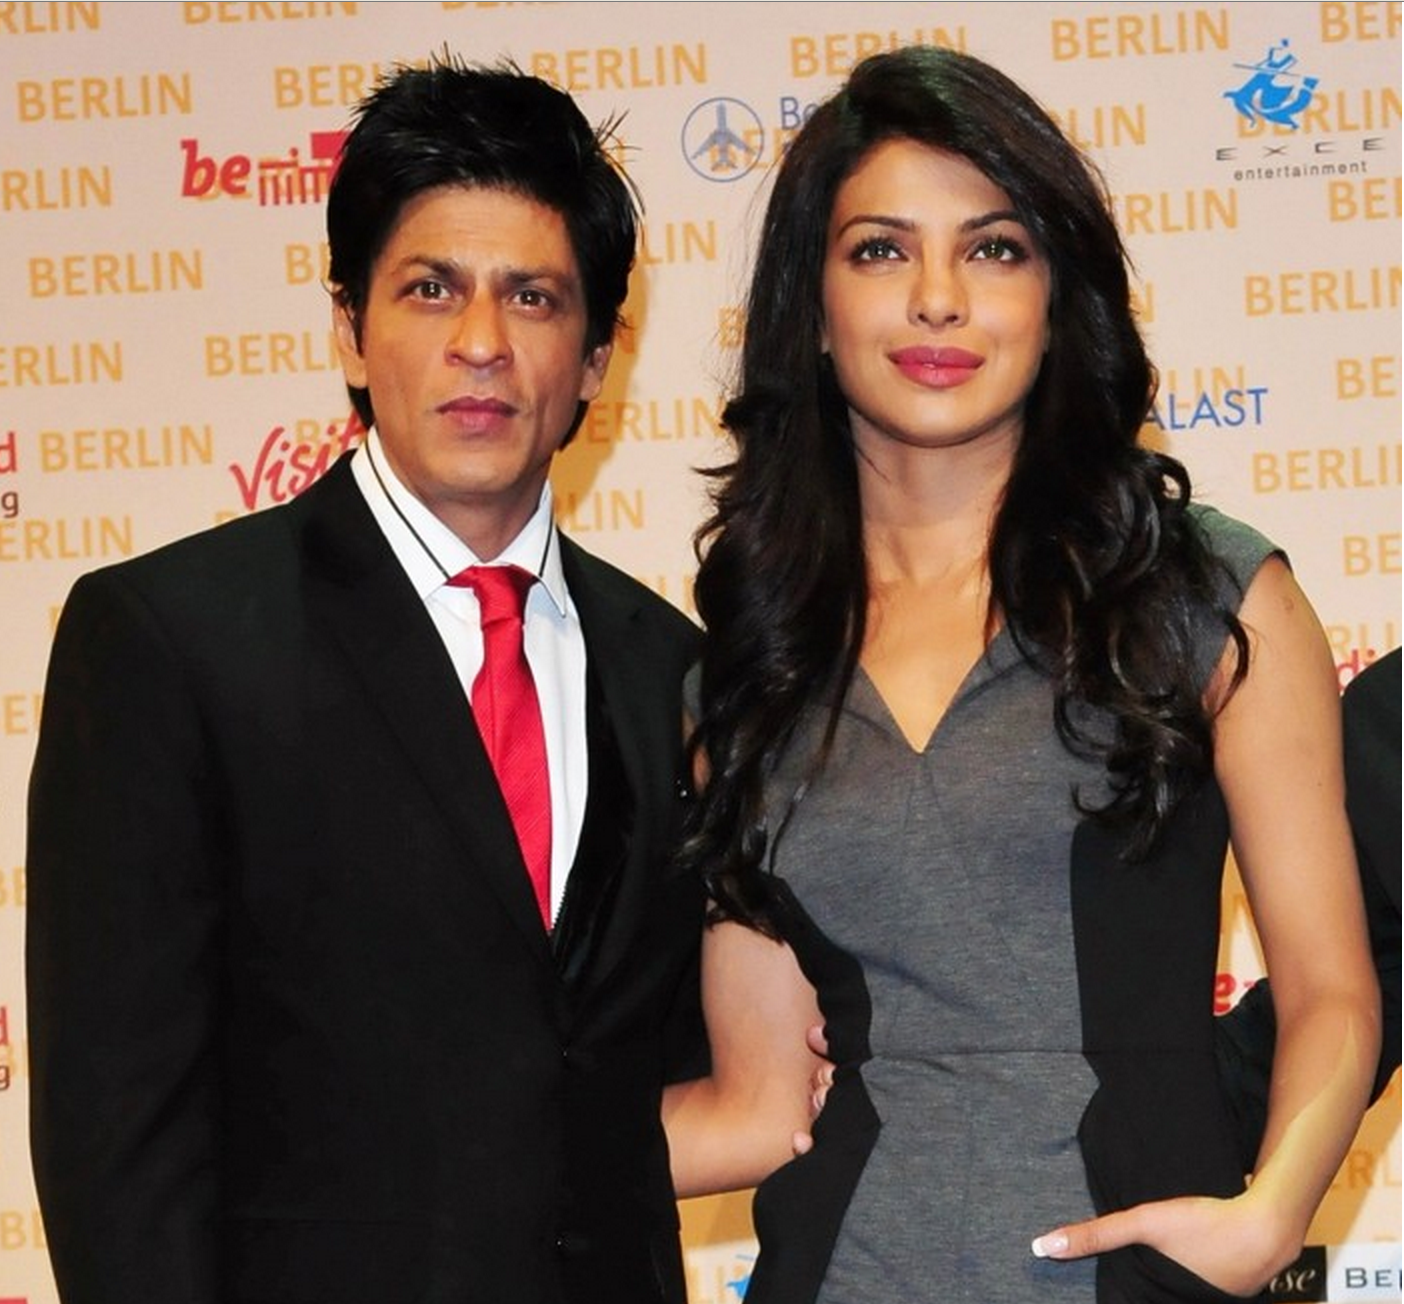 Shah Rukh Khan and Priyanka Chopra came together for Got Talent World Stage